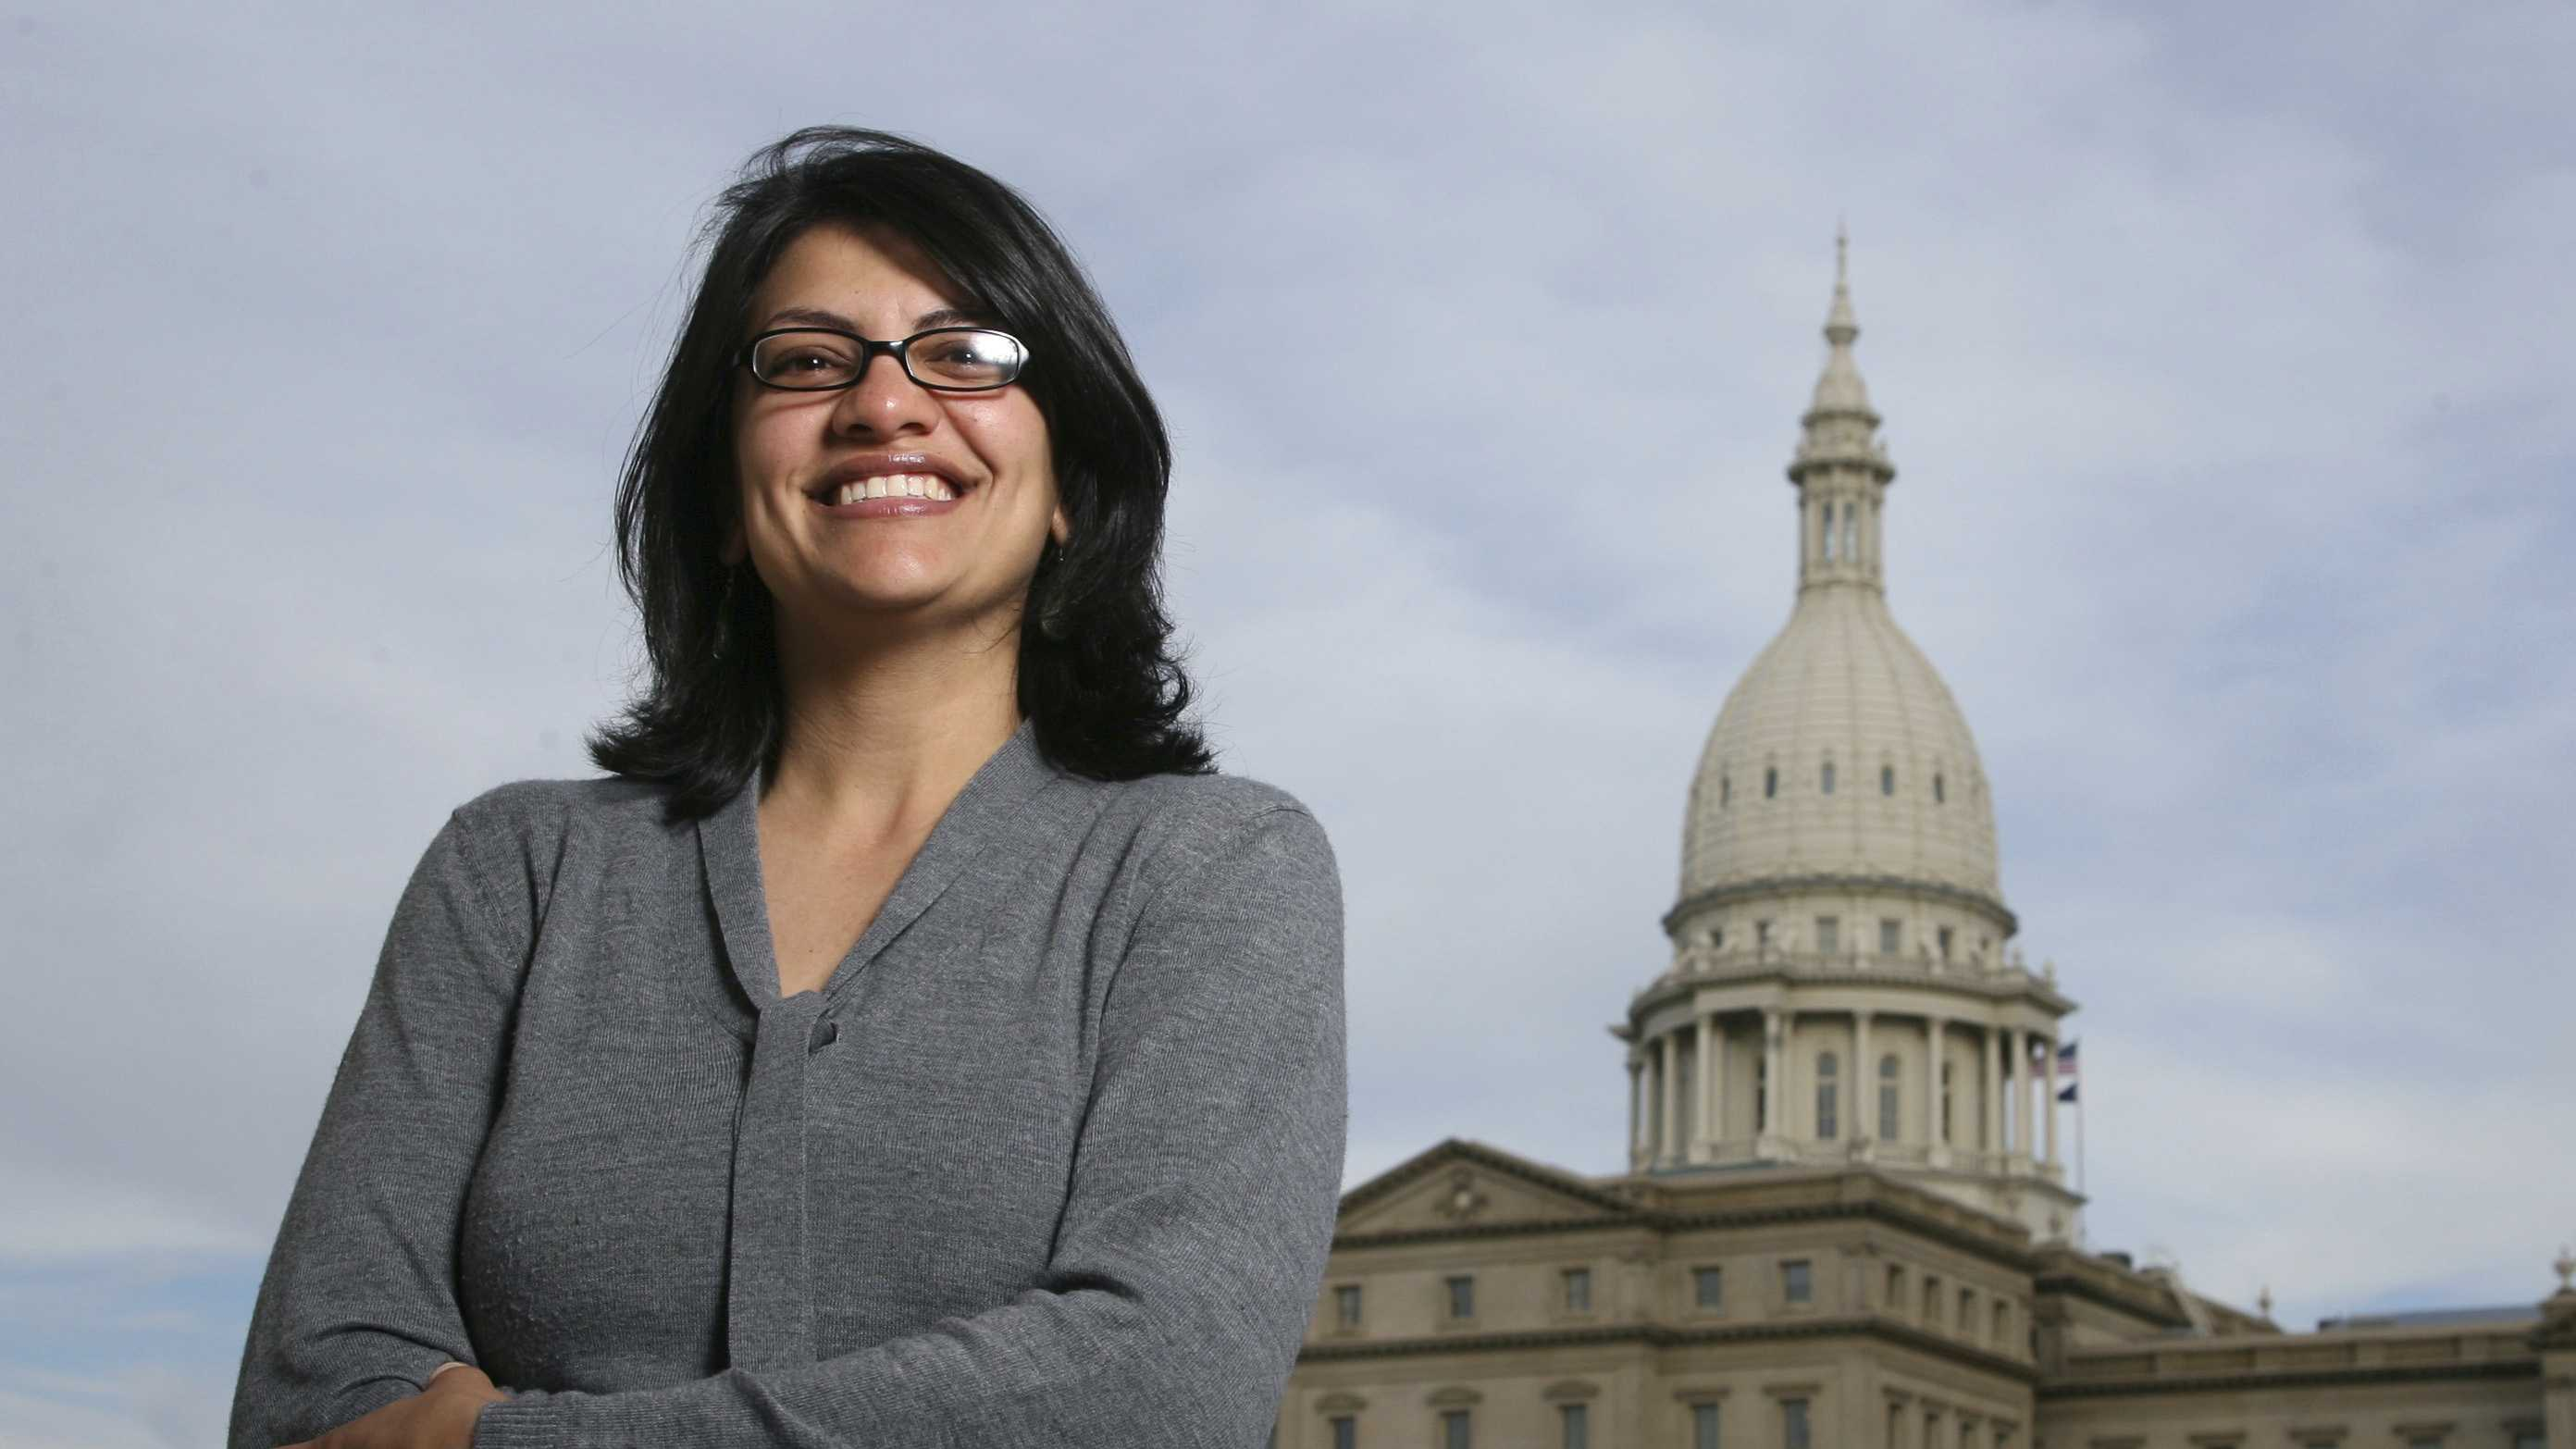 Rashida Tlaib, a Democrat, is photographed outside the Michigan Capitol in Lansing, Mich. The Michigan primary victory of Tlaib, who is expected to become the first Muslim woman and Palestinian-American to serve in the U.S. Congress, is rippling across the Middle East.